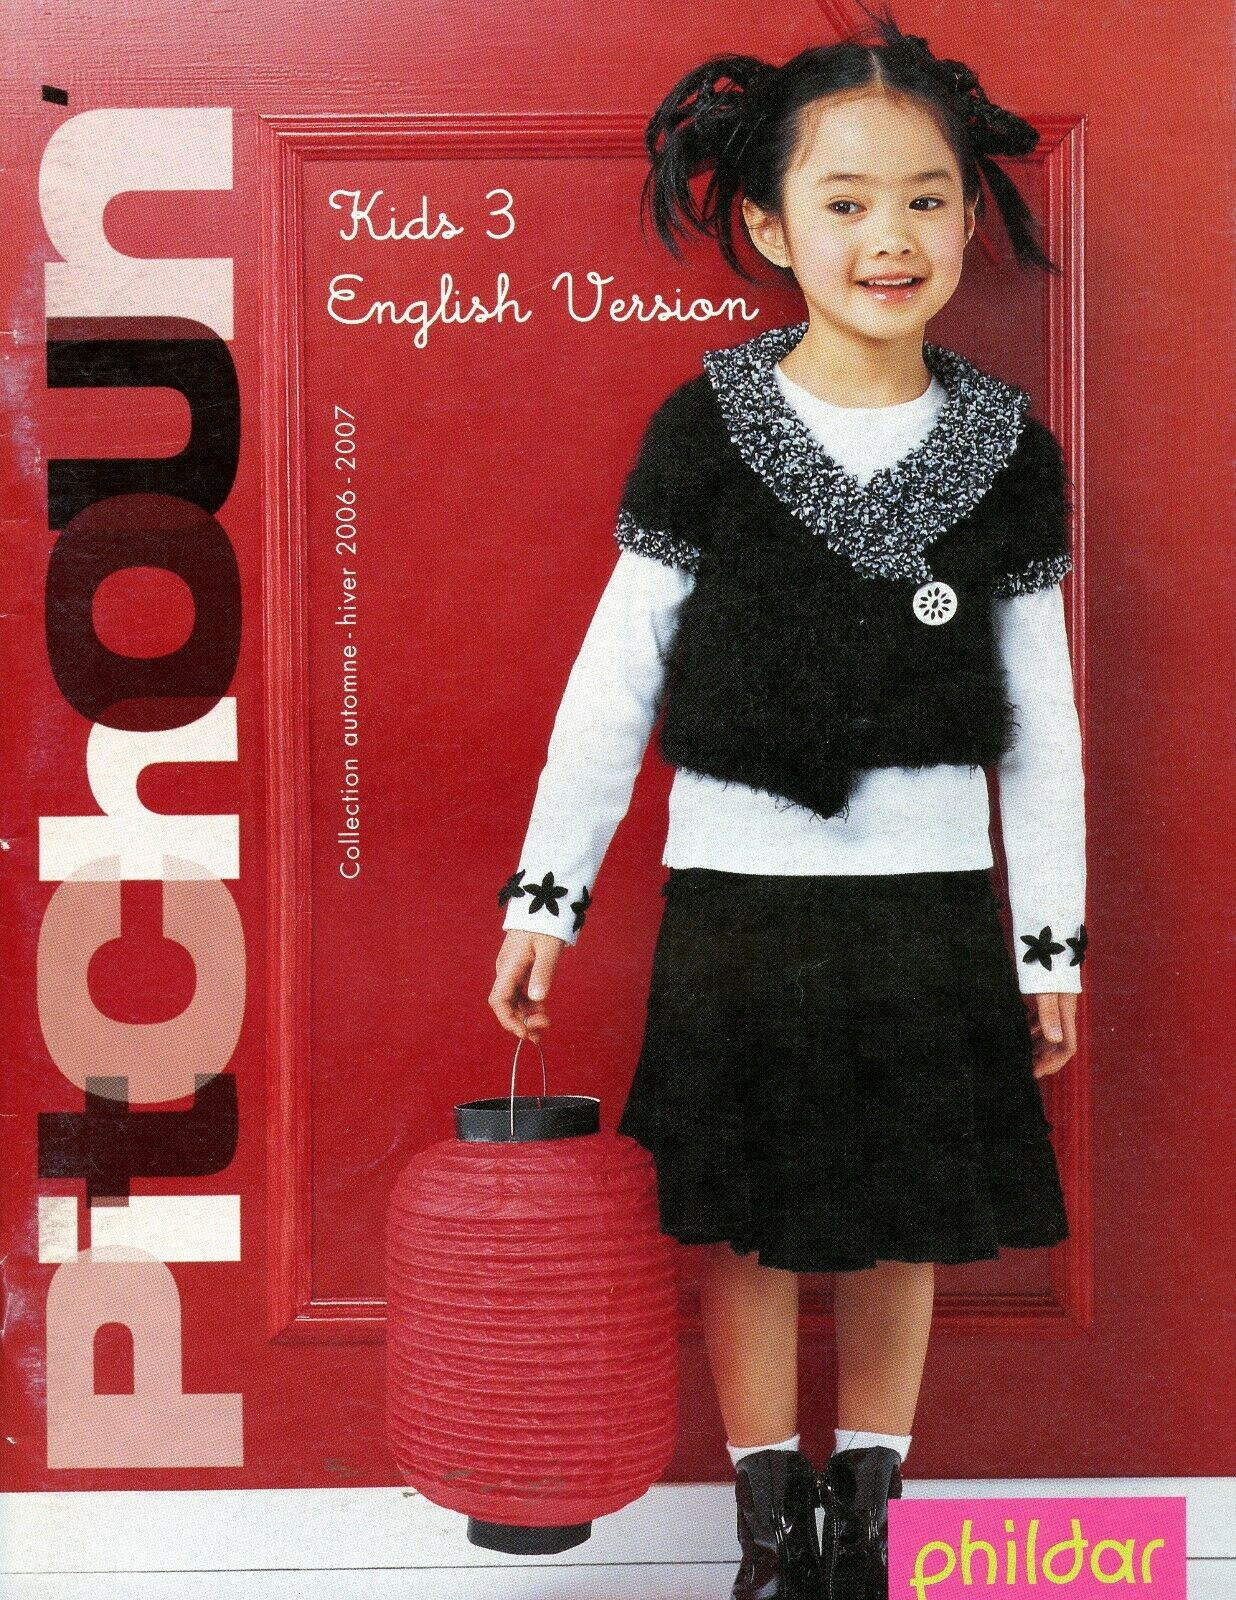 Phildar Kids 3 English Version Knitting /& Crochet Pattern Book 48 Designs 2-10